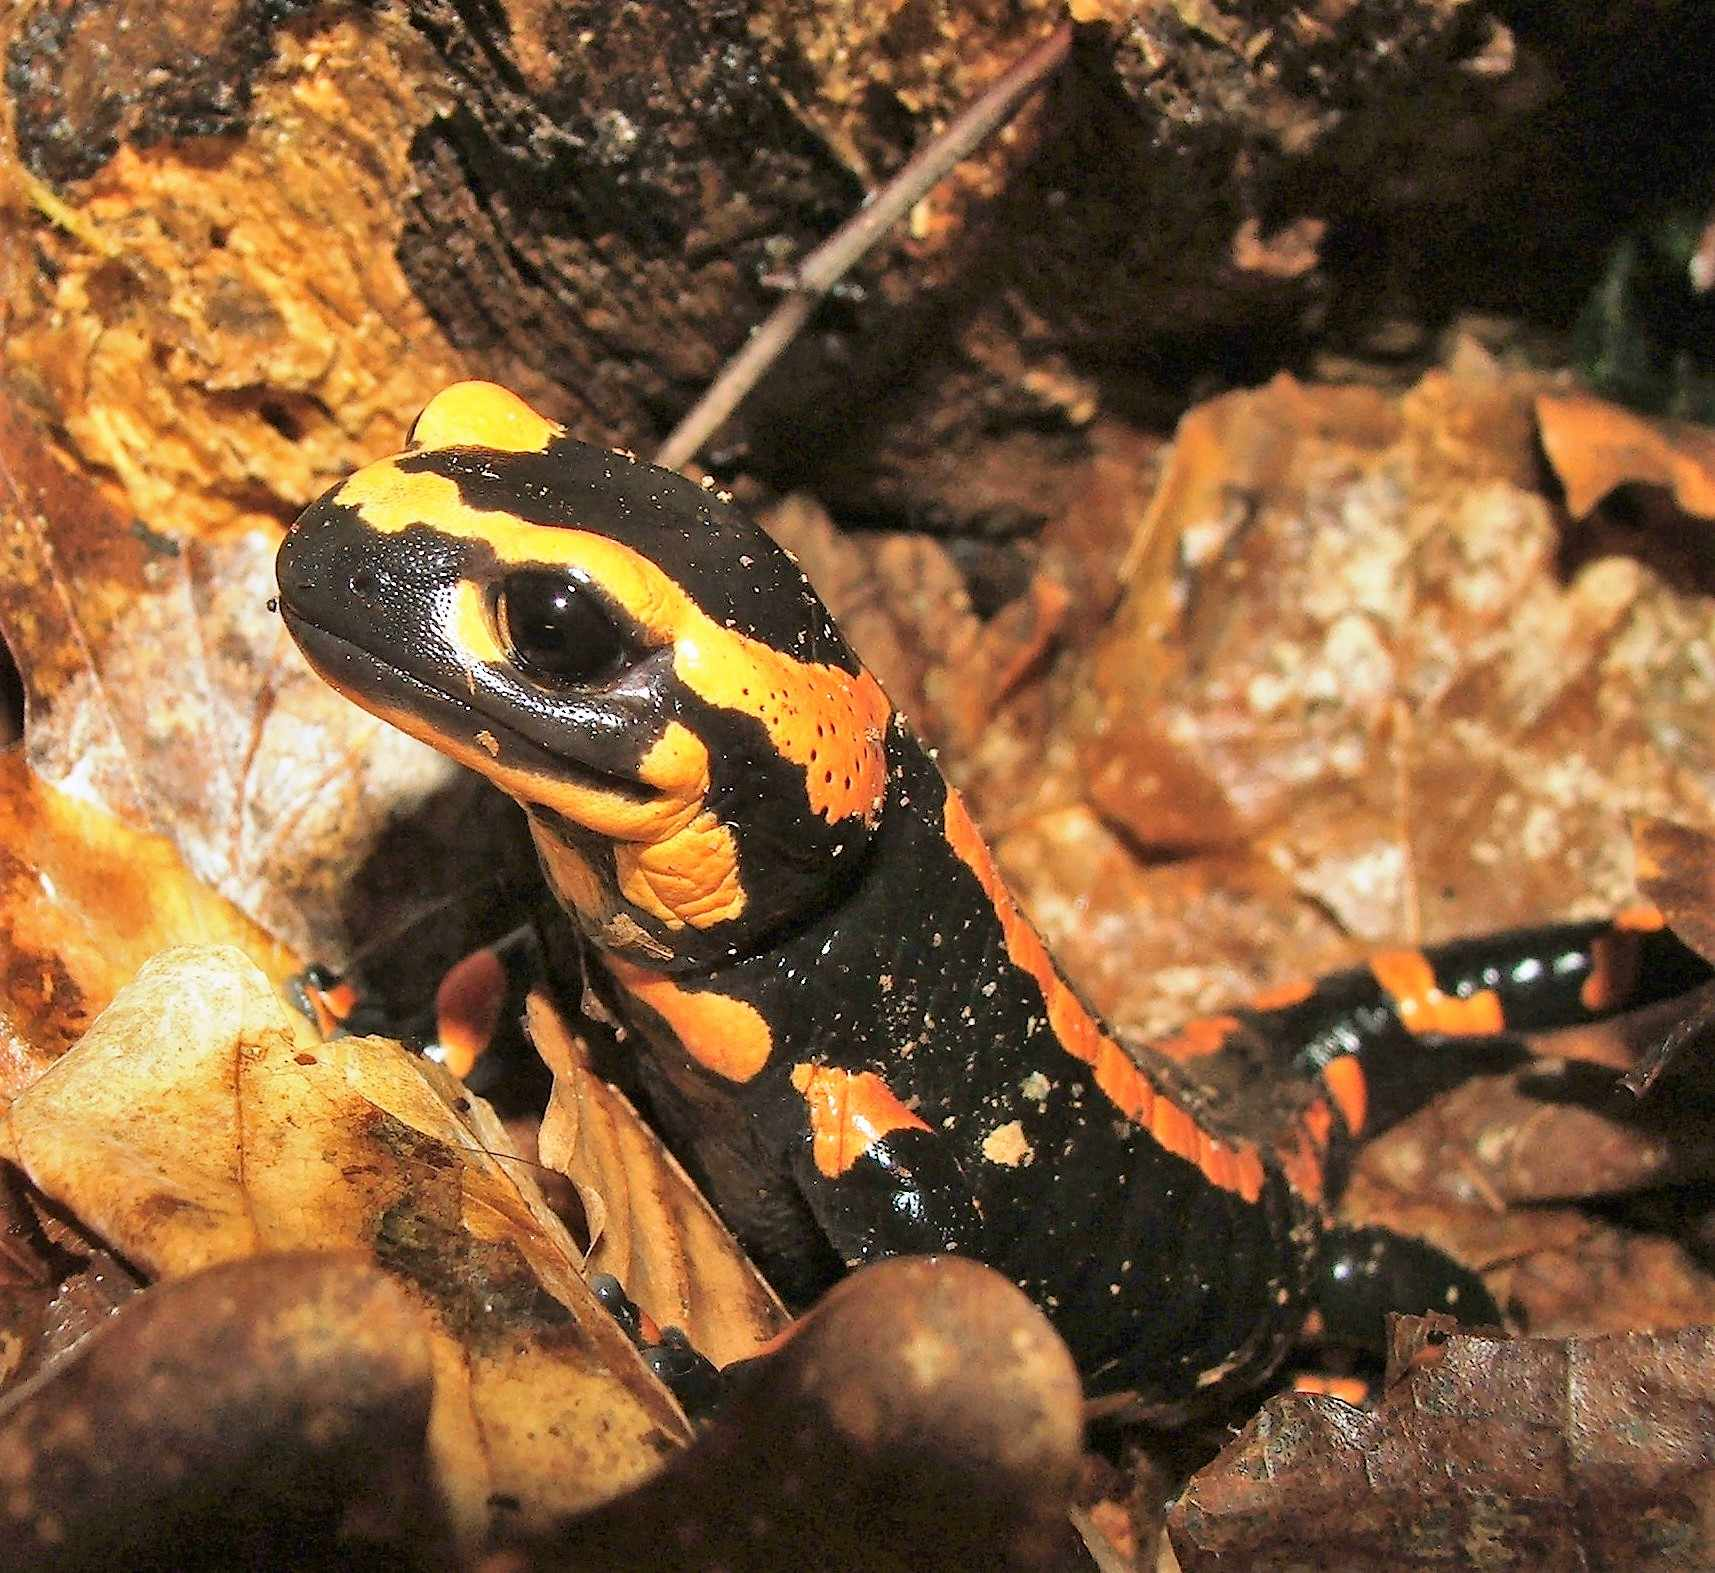 Fire salamanders in one monitored population have declined by 99 per cent due to the Bsal infection© B. Tapley / ZSL